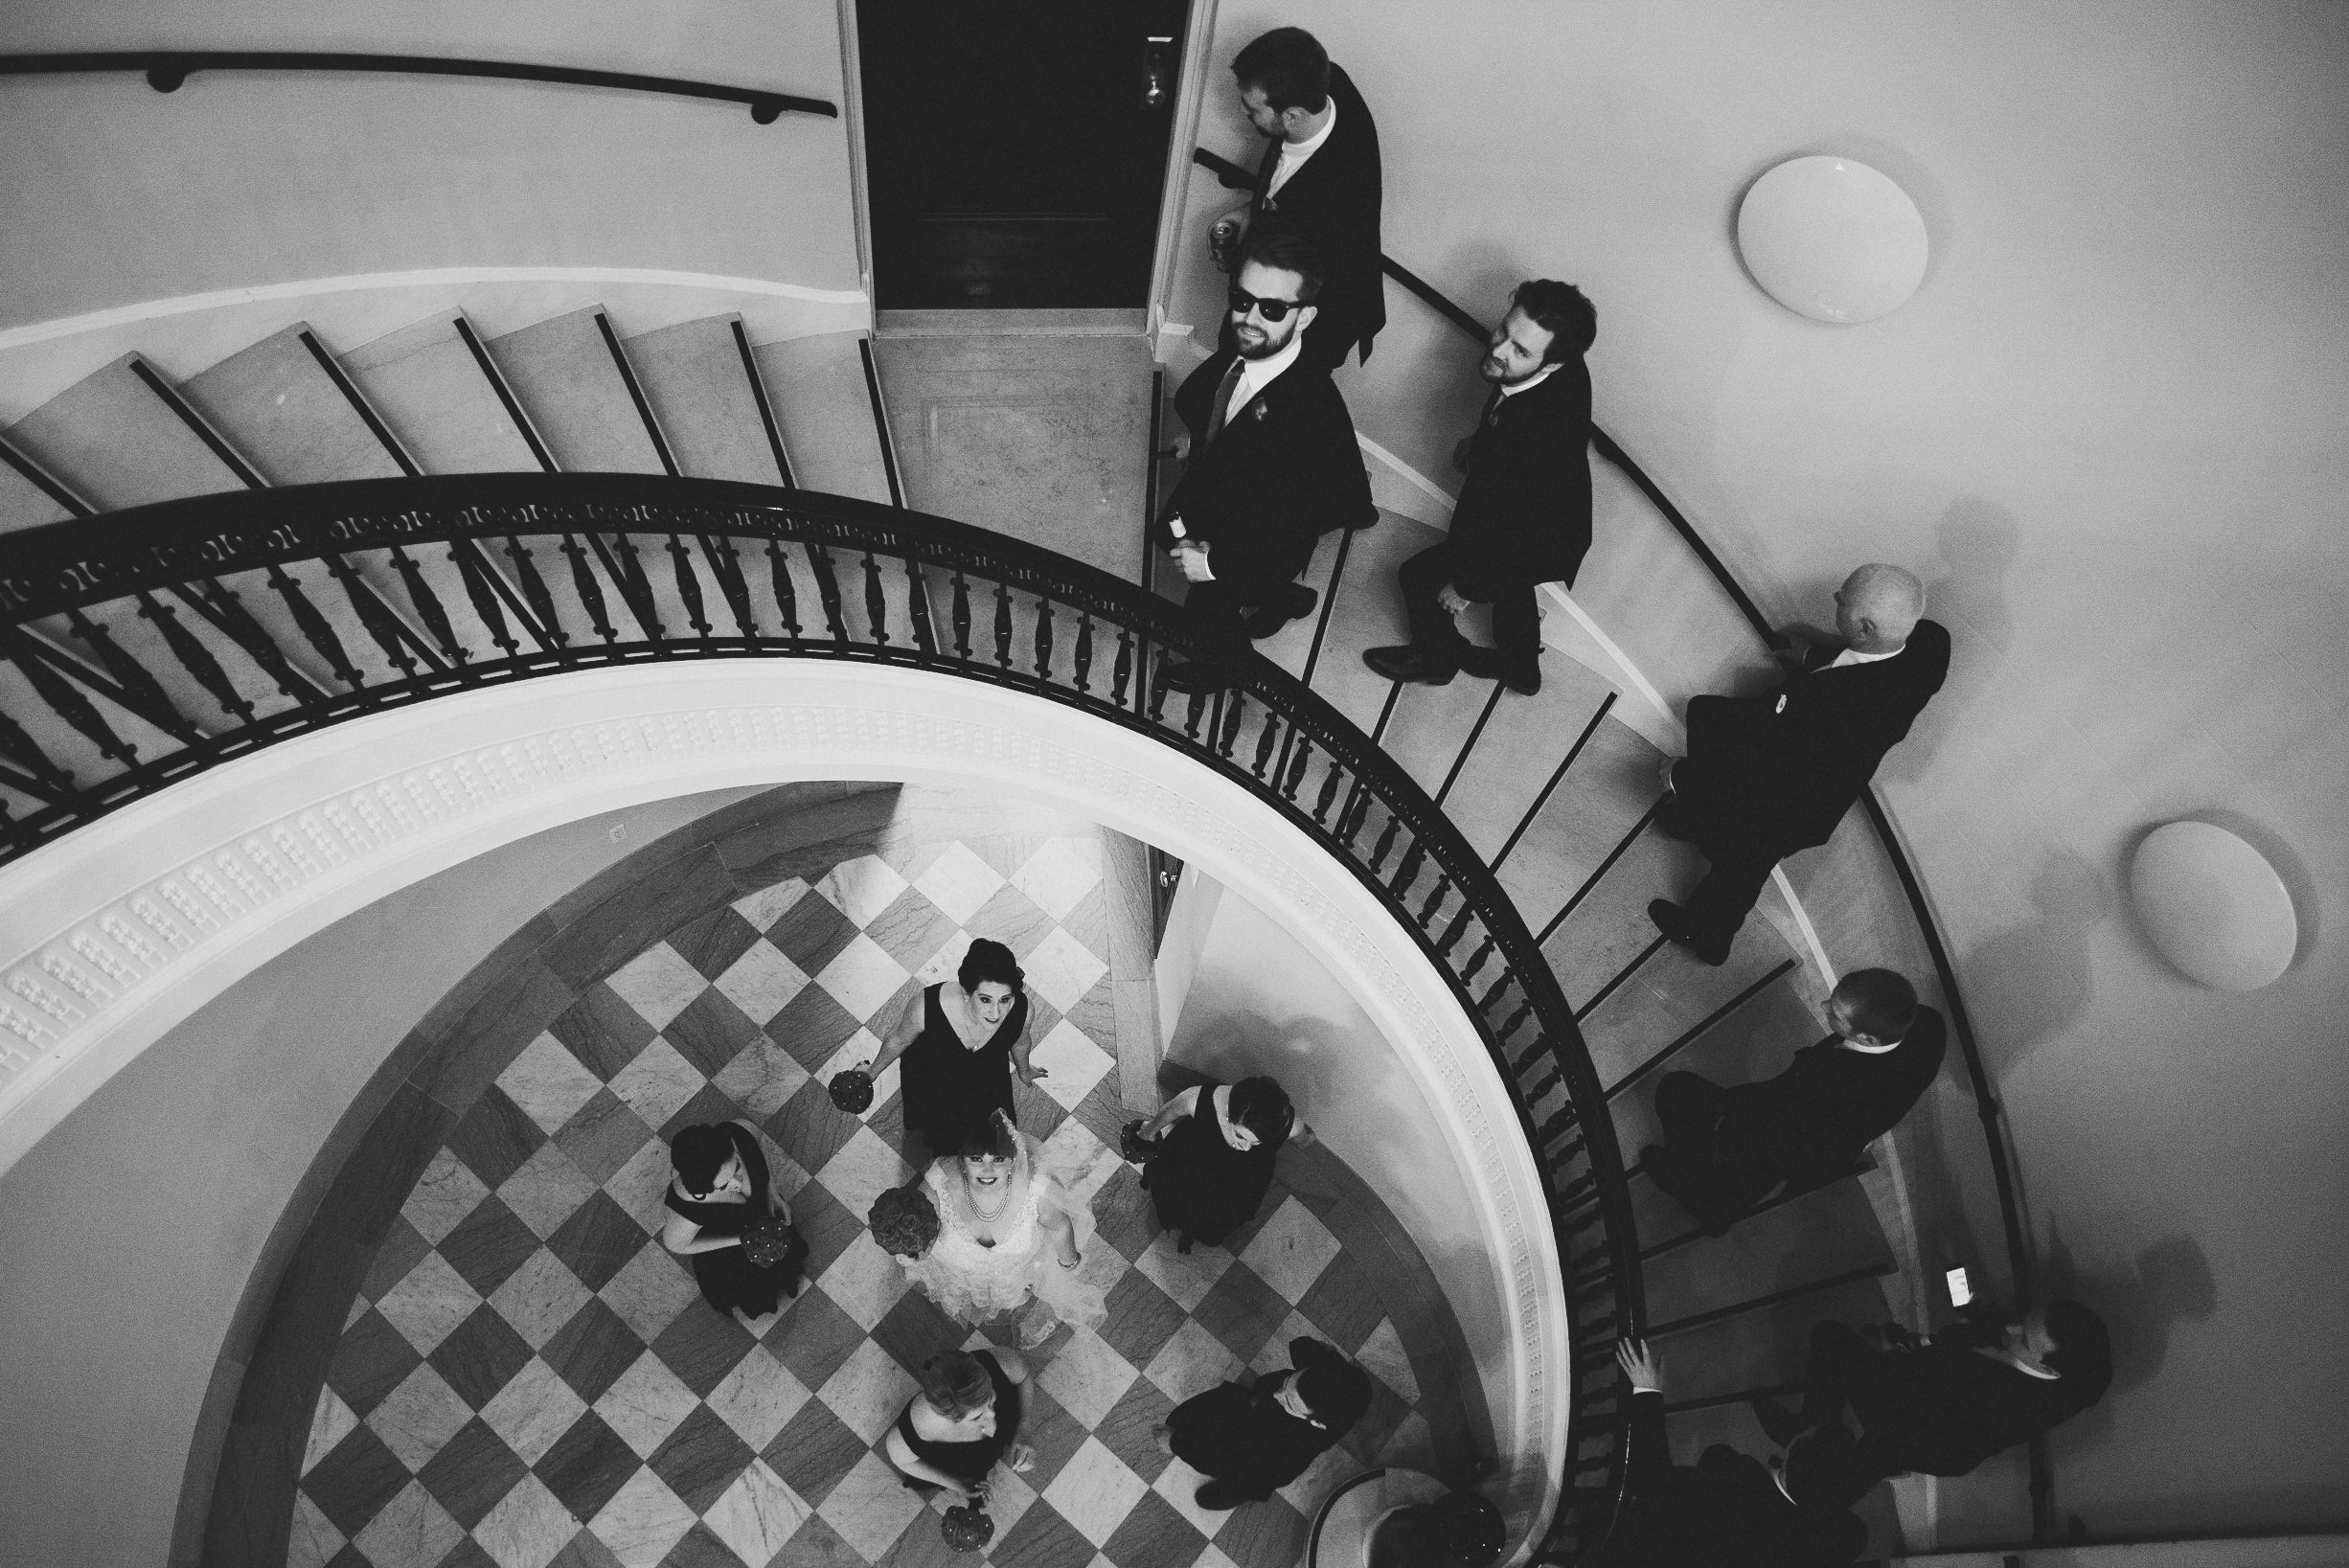 Carnegie Institution for Science Wedding Photographer Mantas Kubilinskas-15.jpg